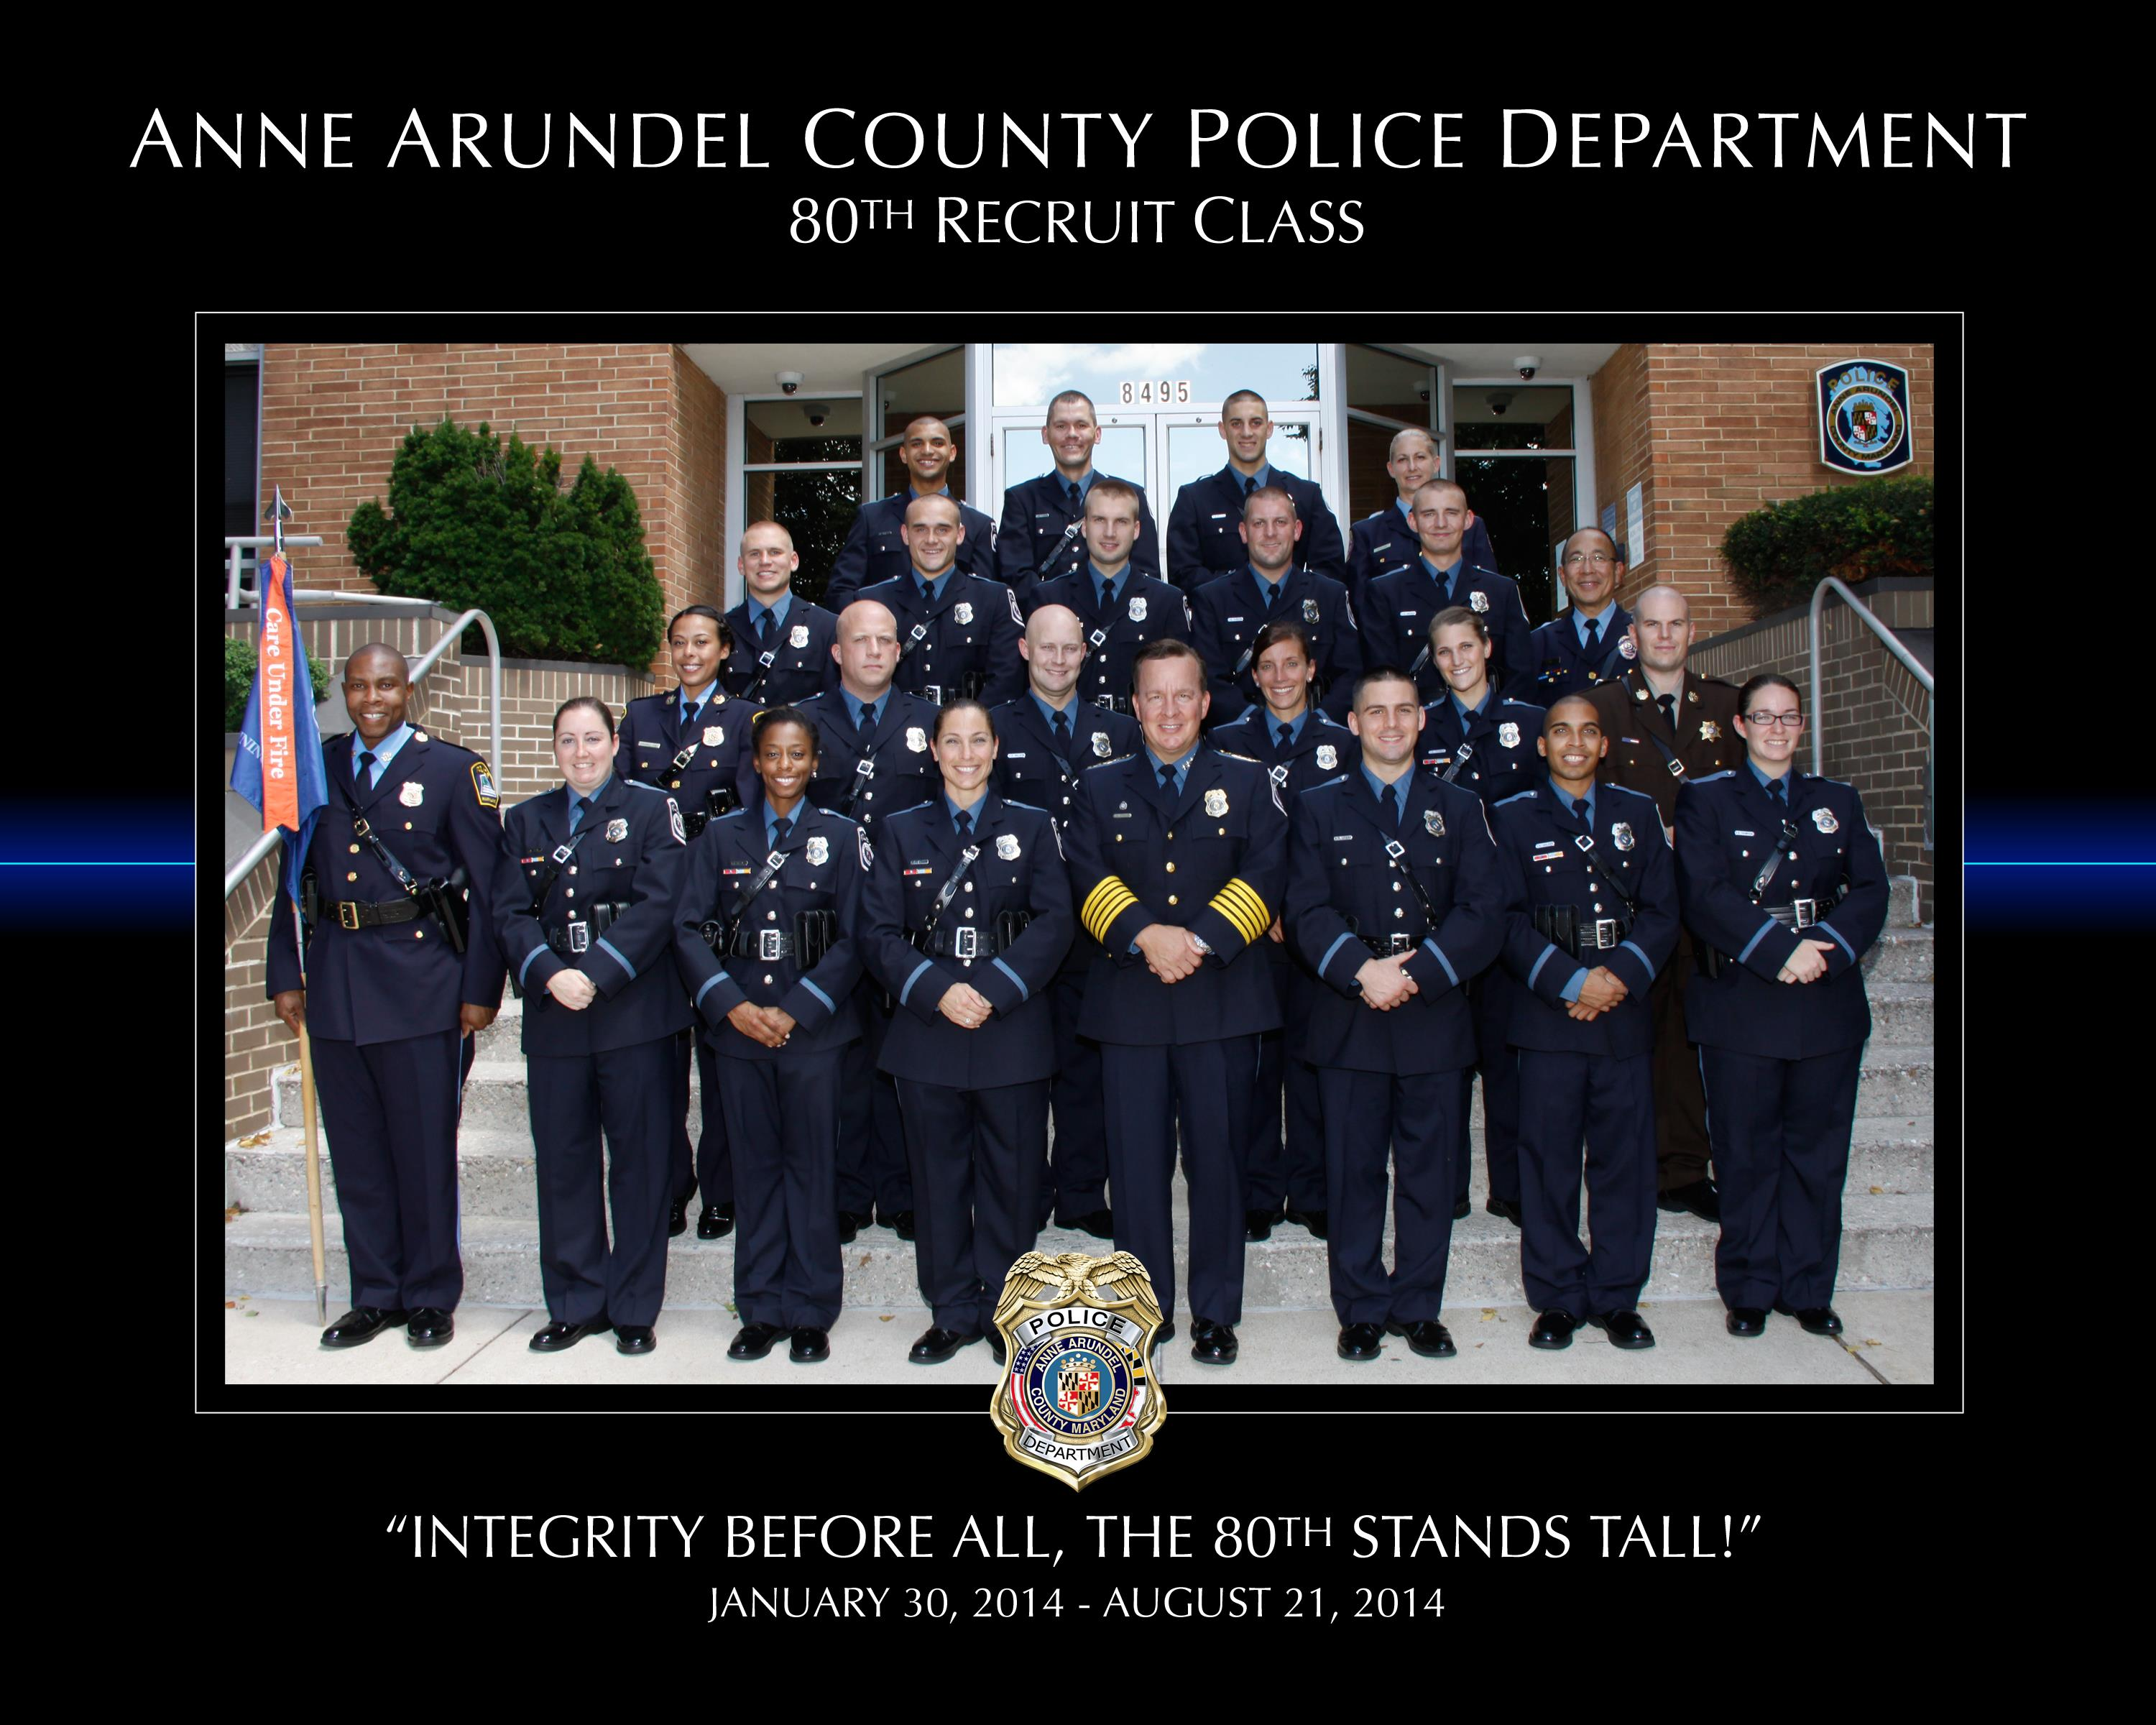 Anne Arundel County Police Department - Training Academy